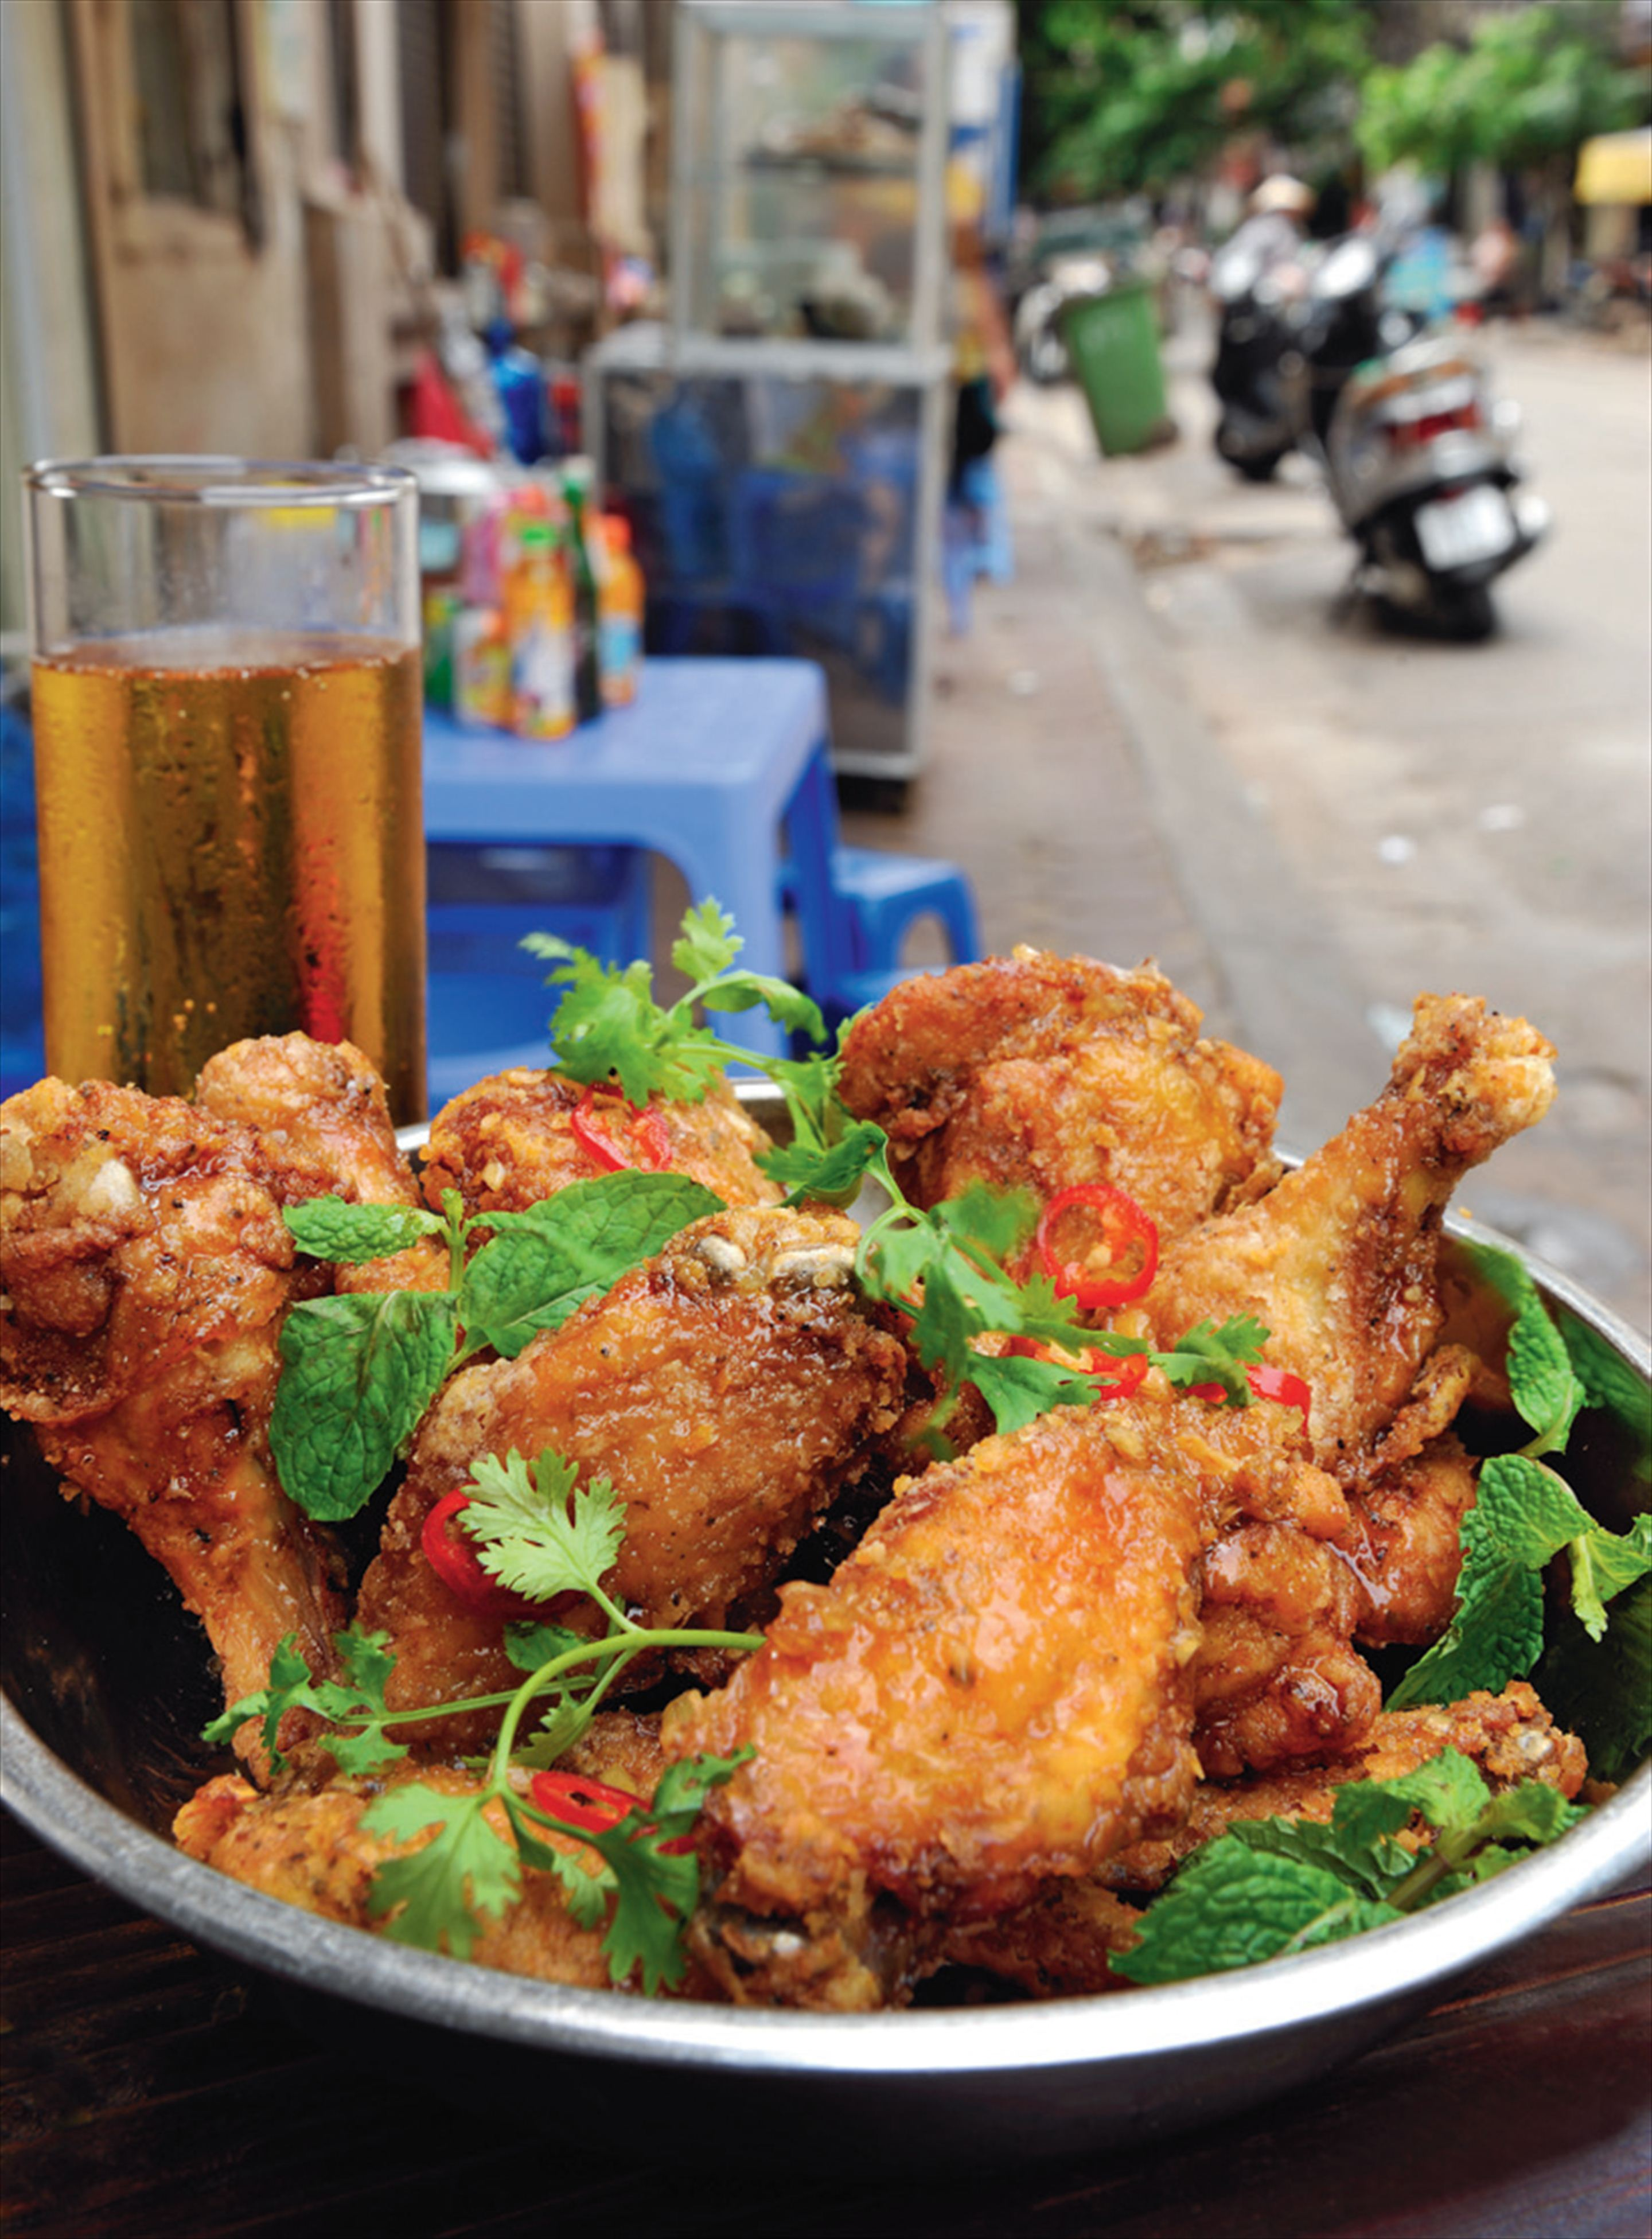 Crispy chicken wings with fish sauce